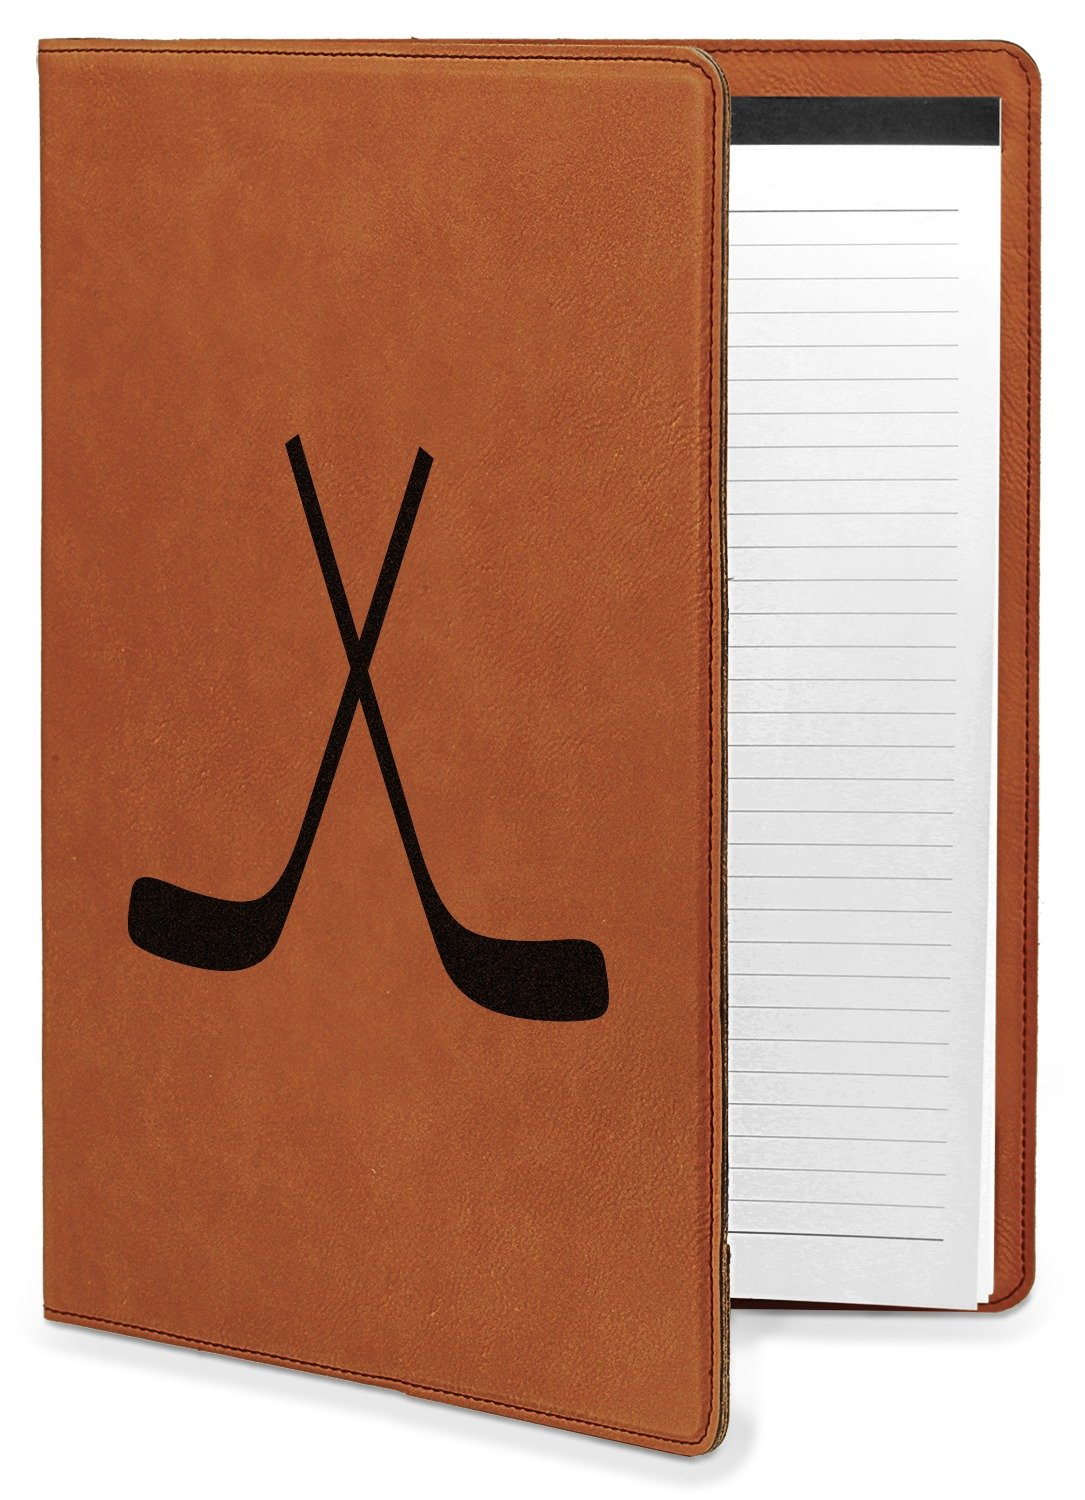 f4ab30d297e Hockey Leatherette Portfolio with Notepad - Large - Single Sided ( Personalized) by RNK Shops